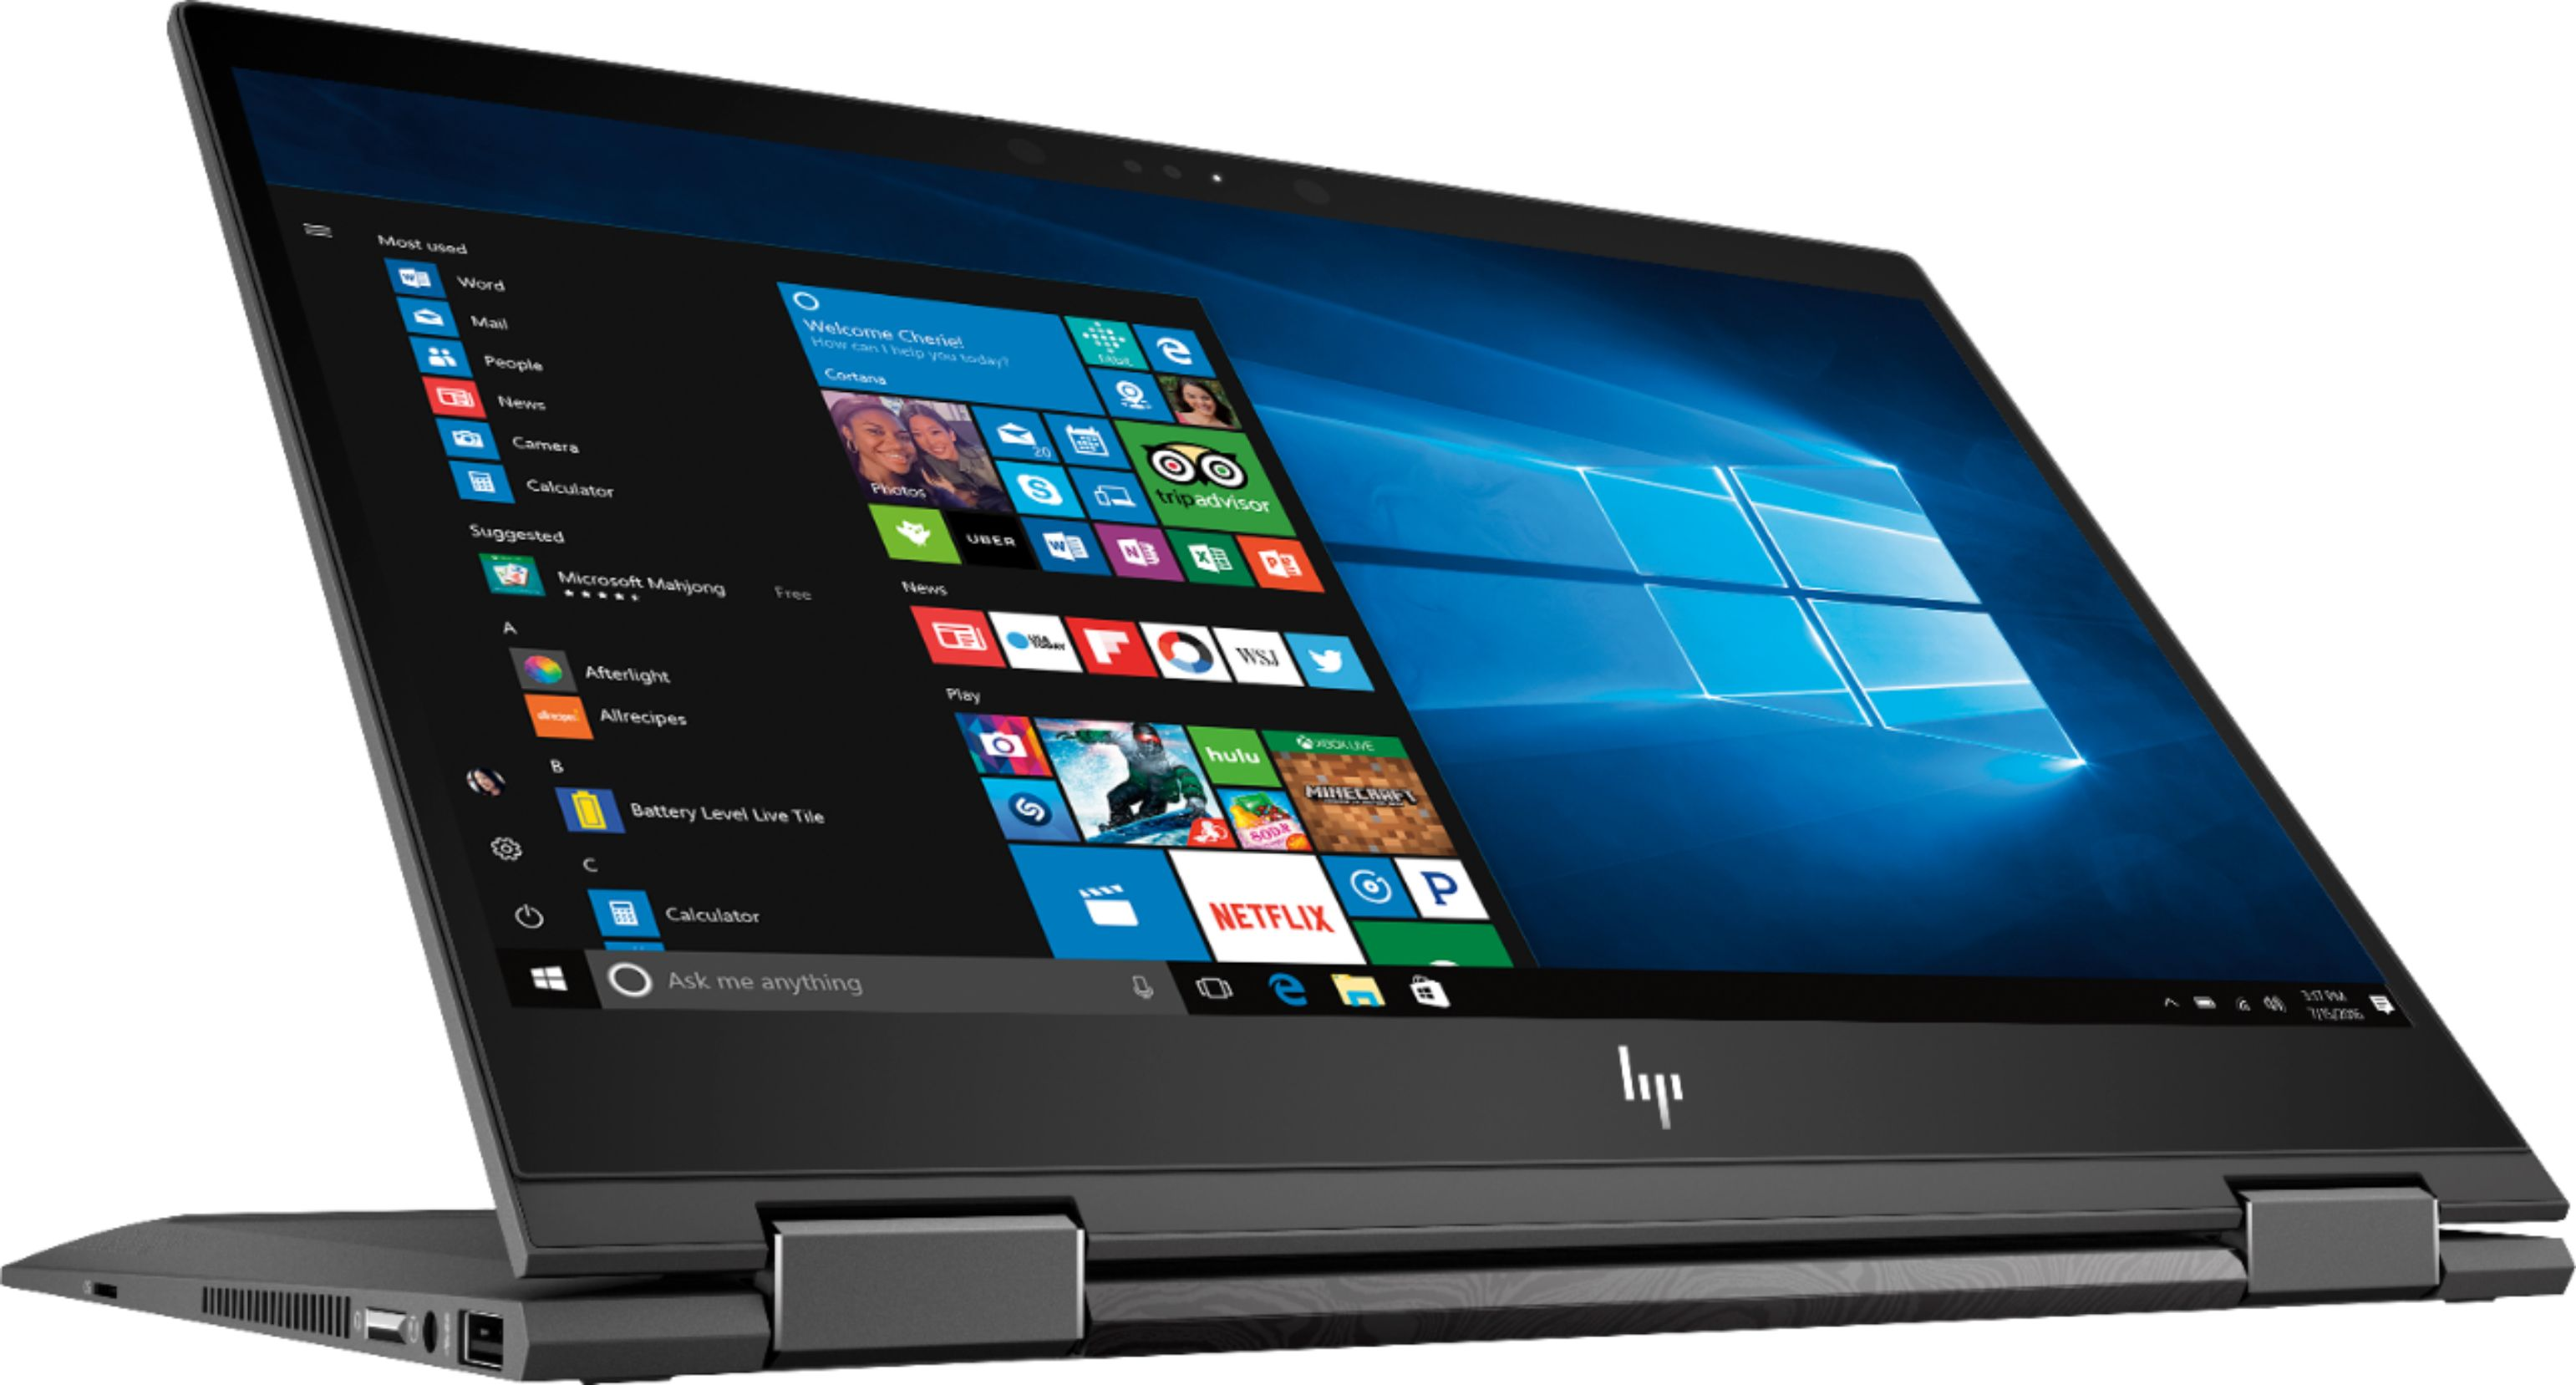 Why Should You Consider Upgrading To The HP Envy x360 Laptop